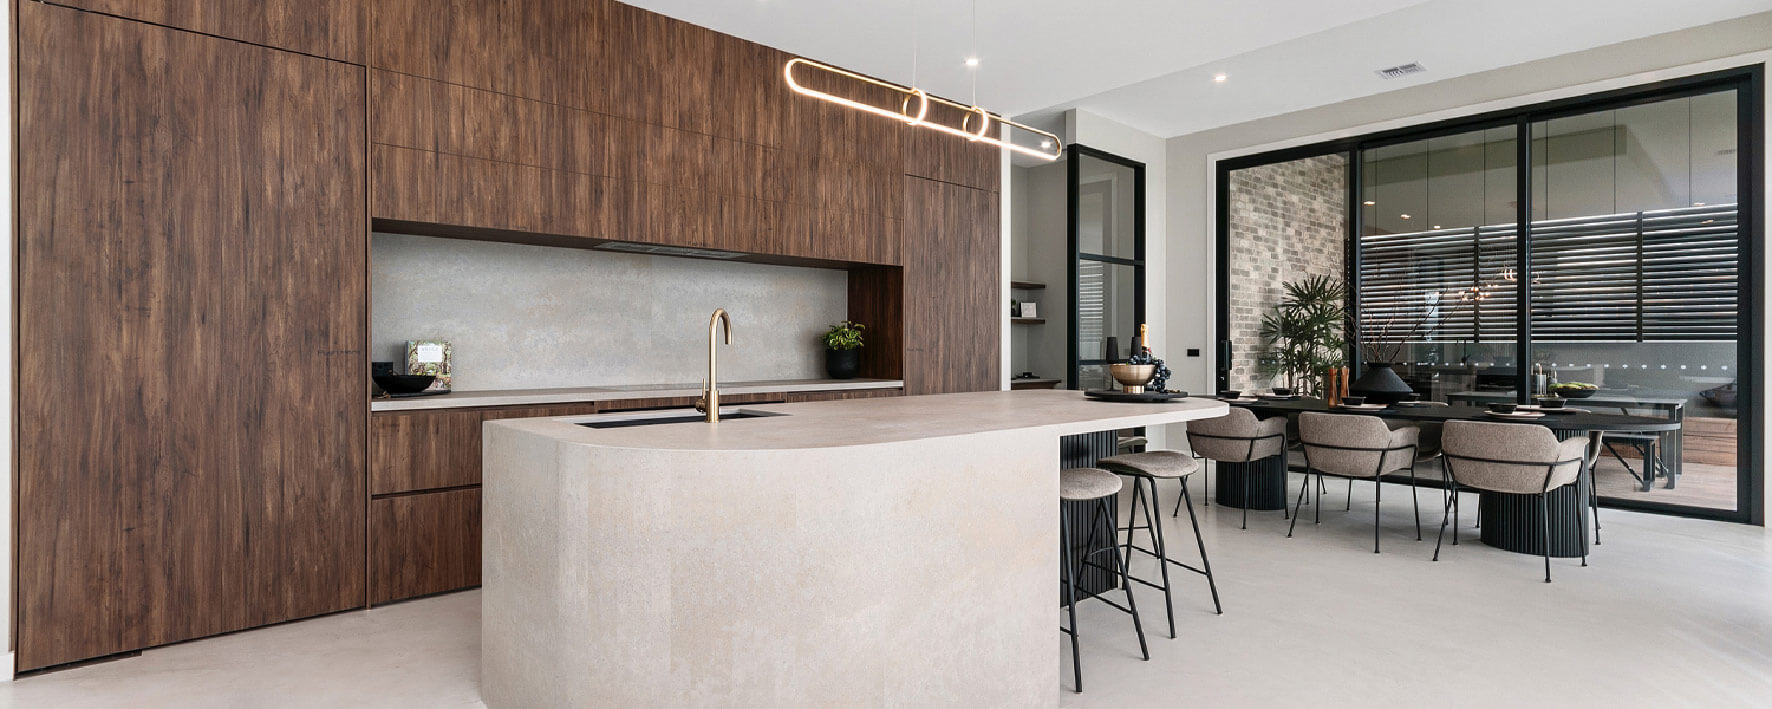 Timber and stone kitchen of Display Home by Virtue Homes